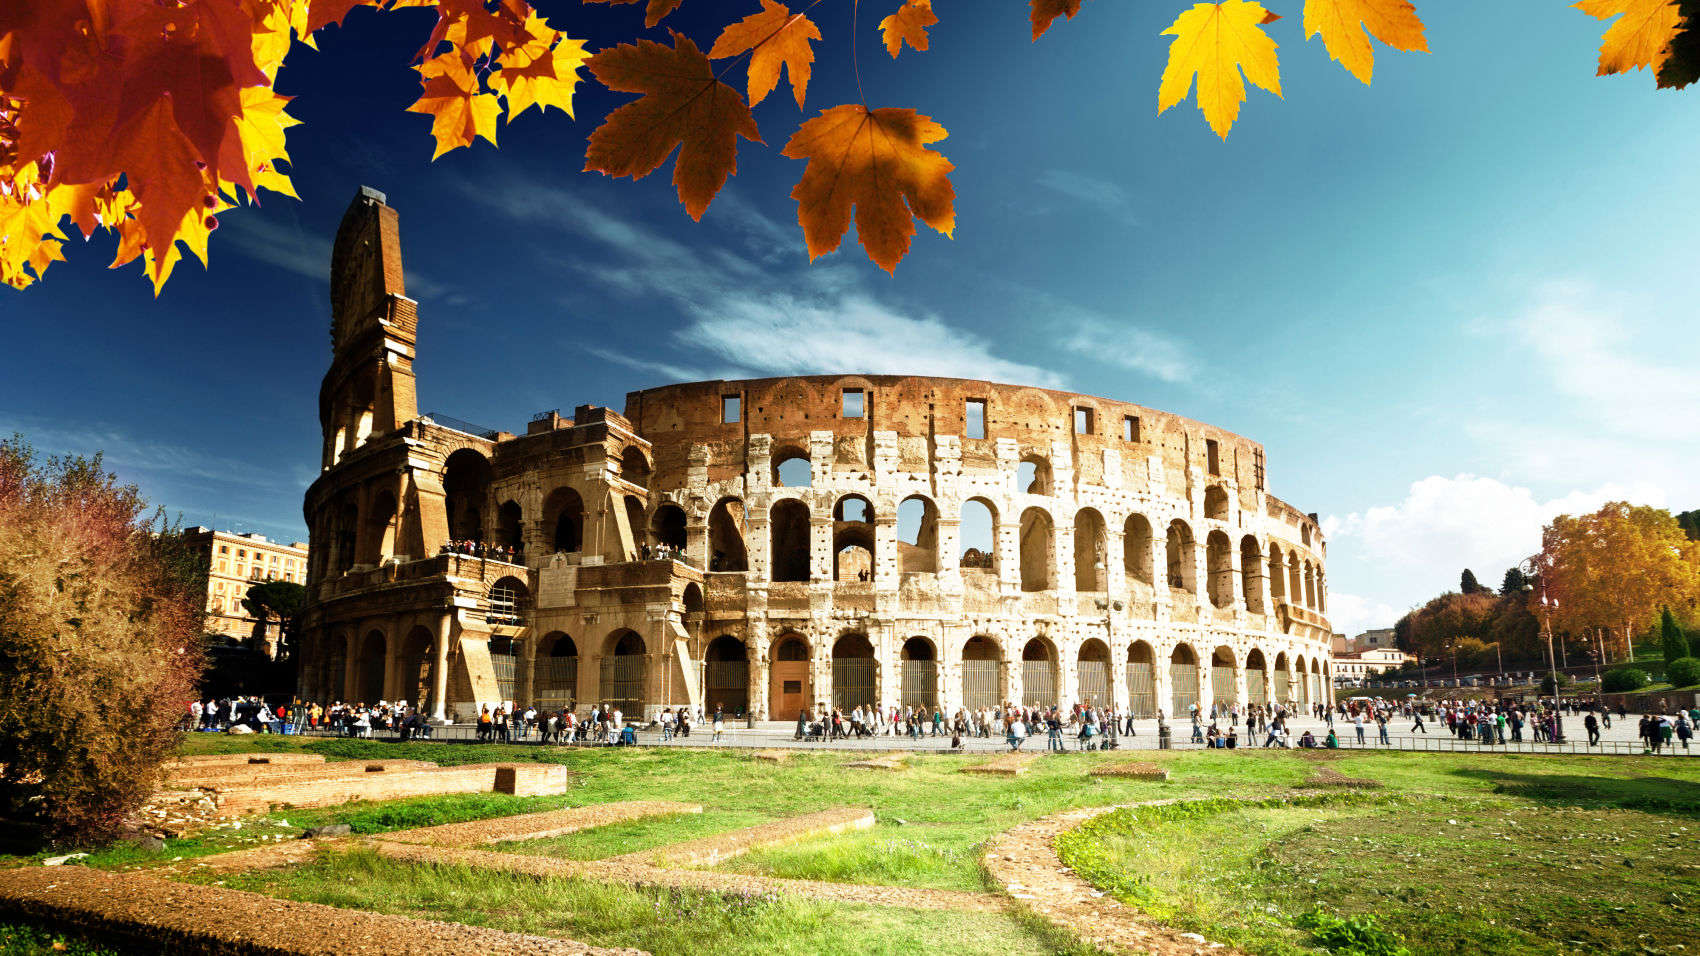 15 Closest Hotels To Colosseum In Rome Hotels Com